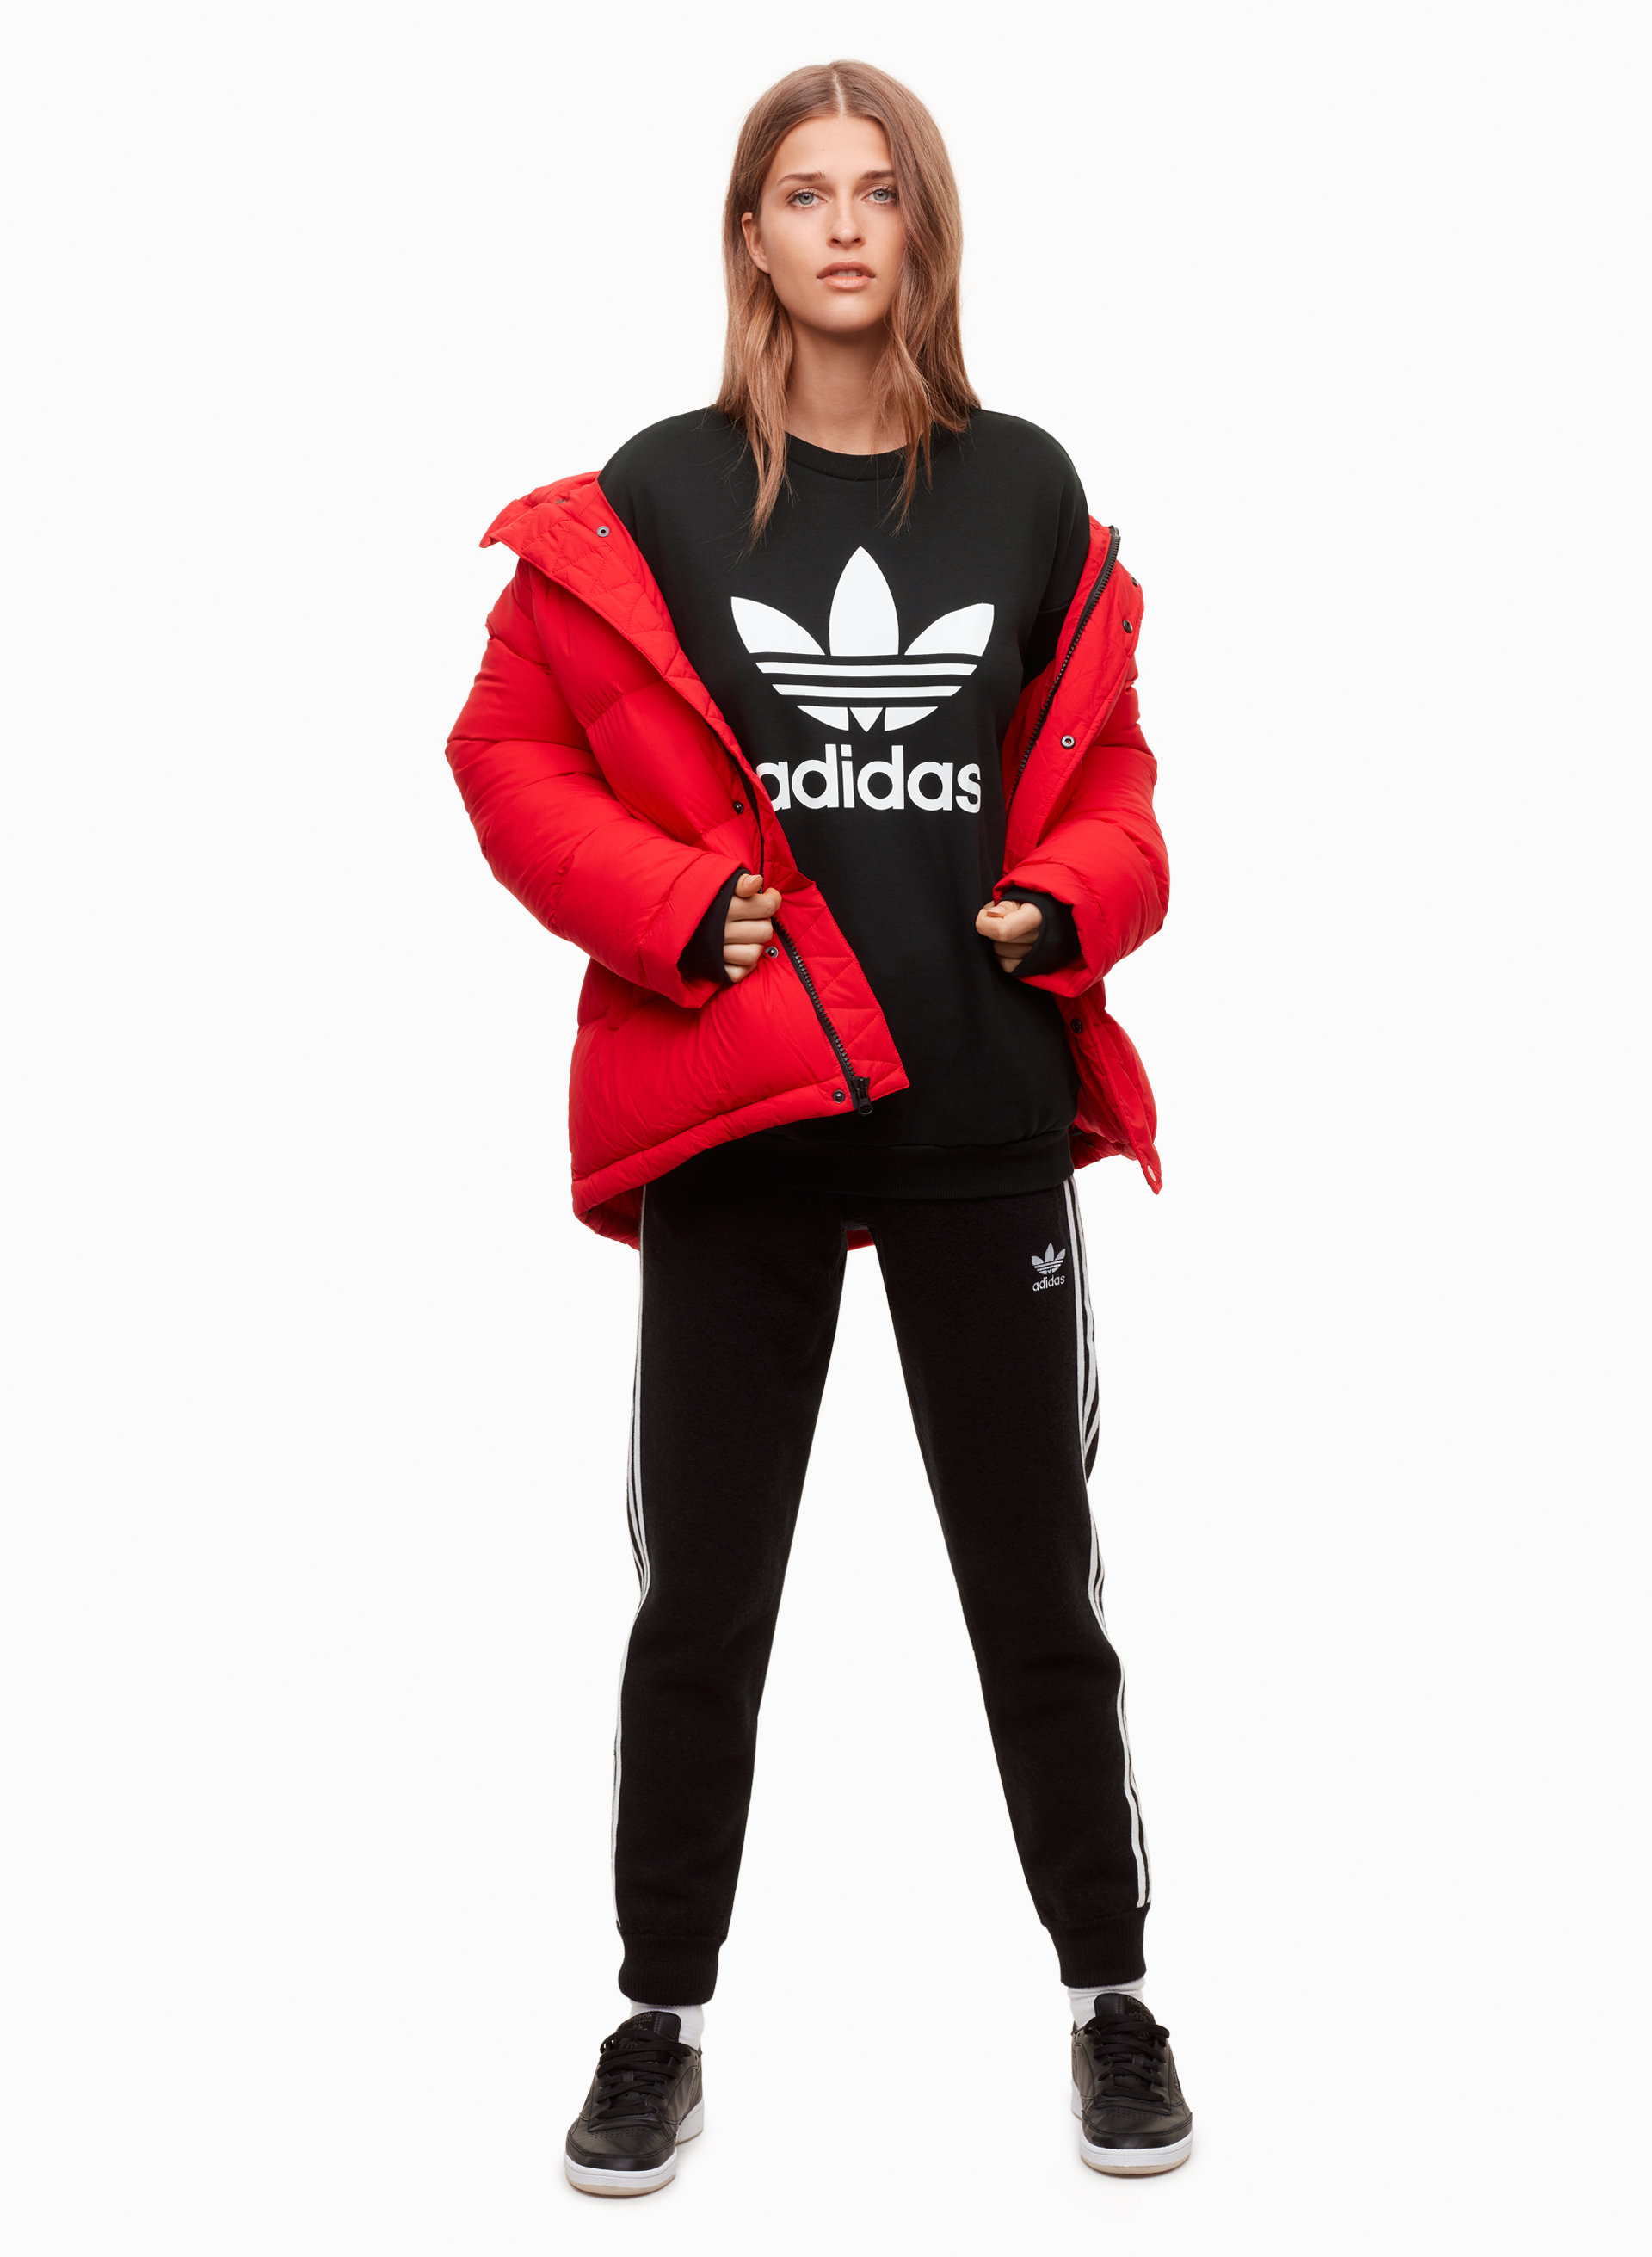 adidas trefoil jumper Sale,up to 54% Discounts